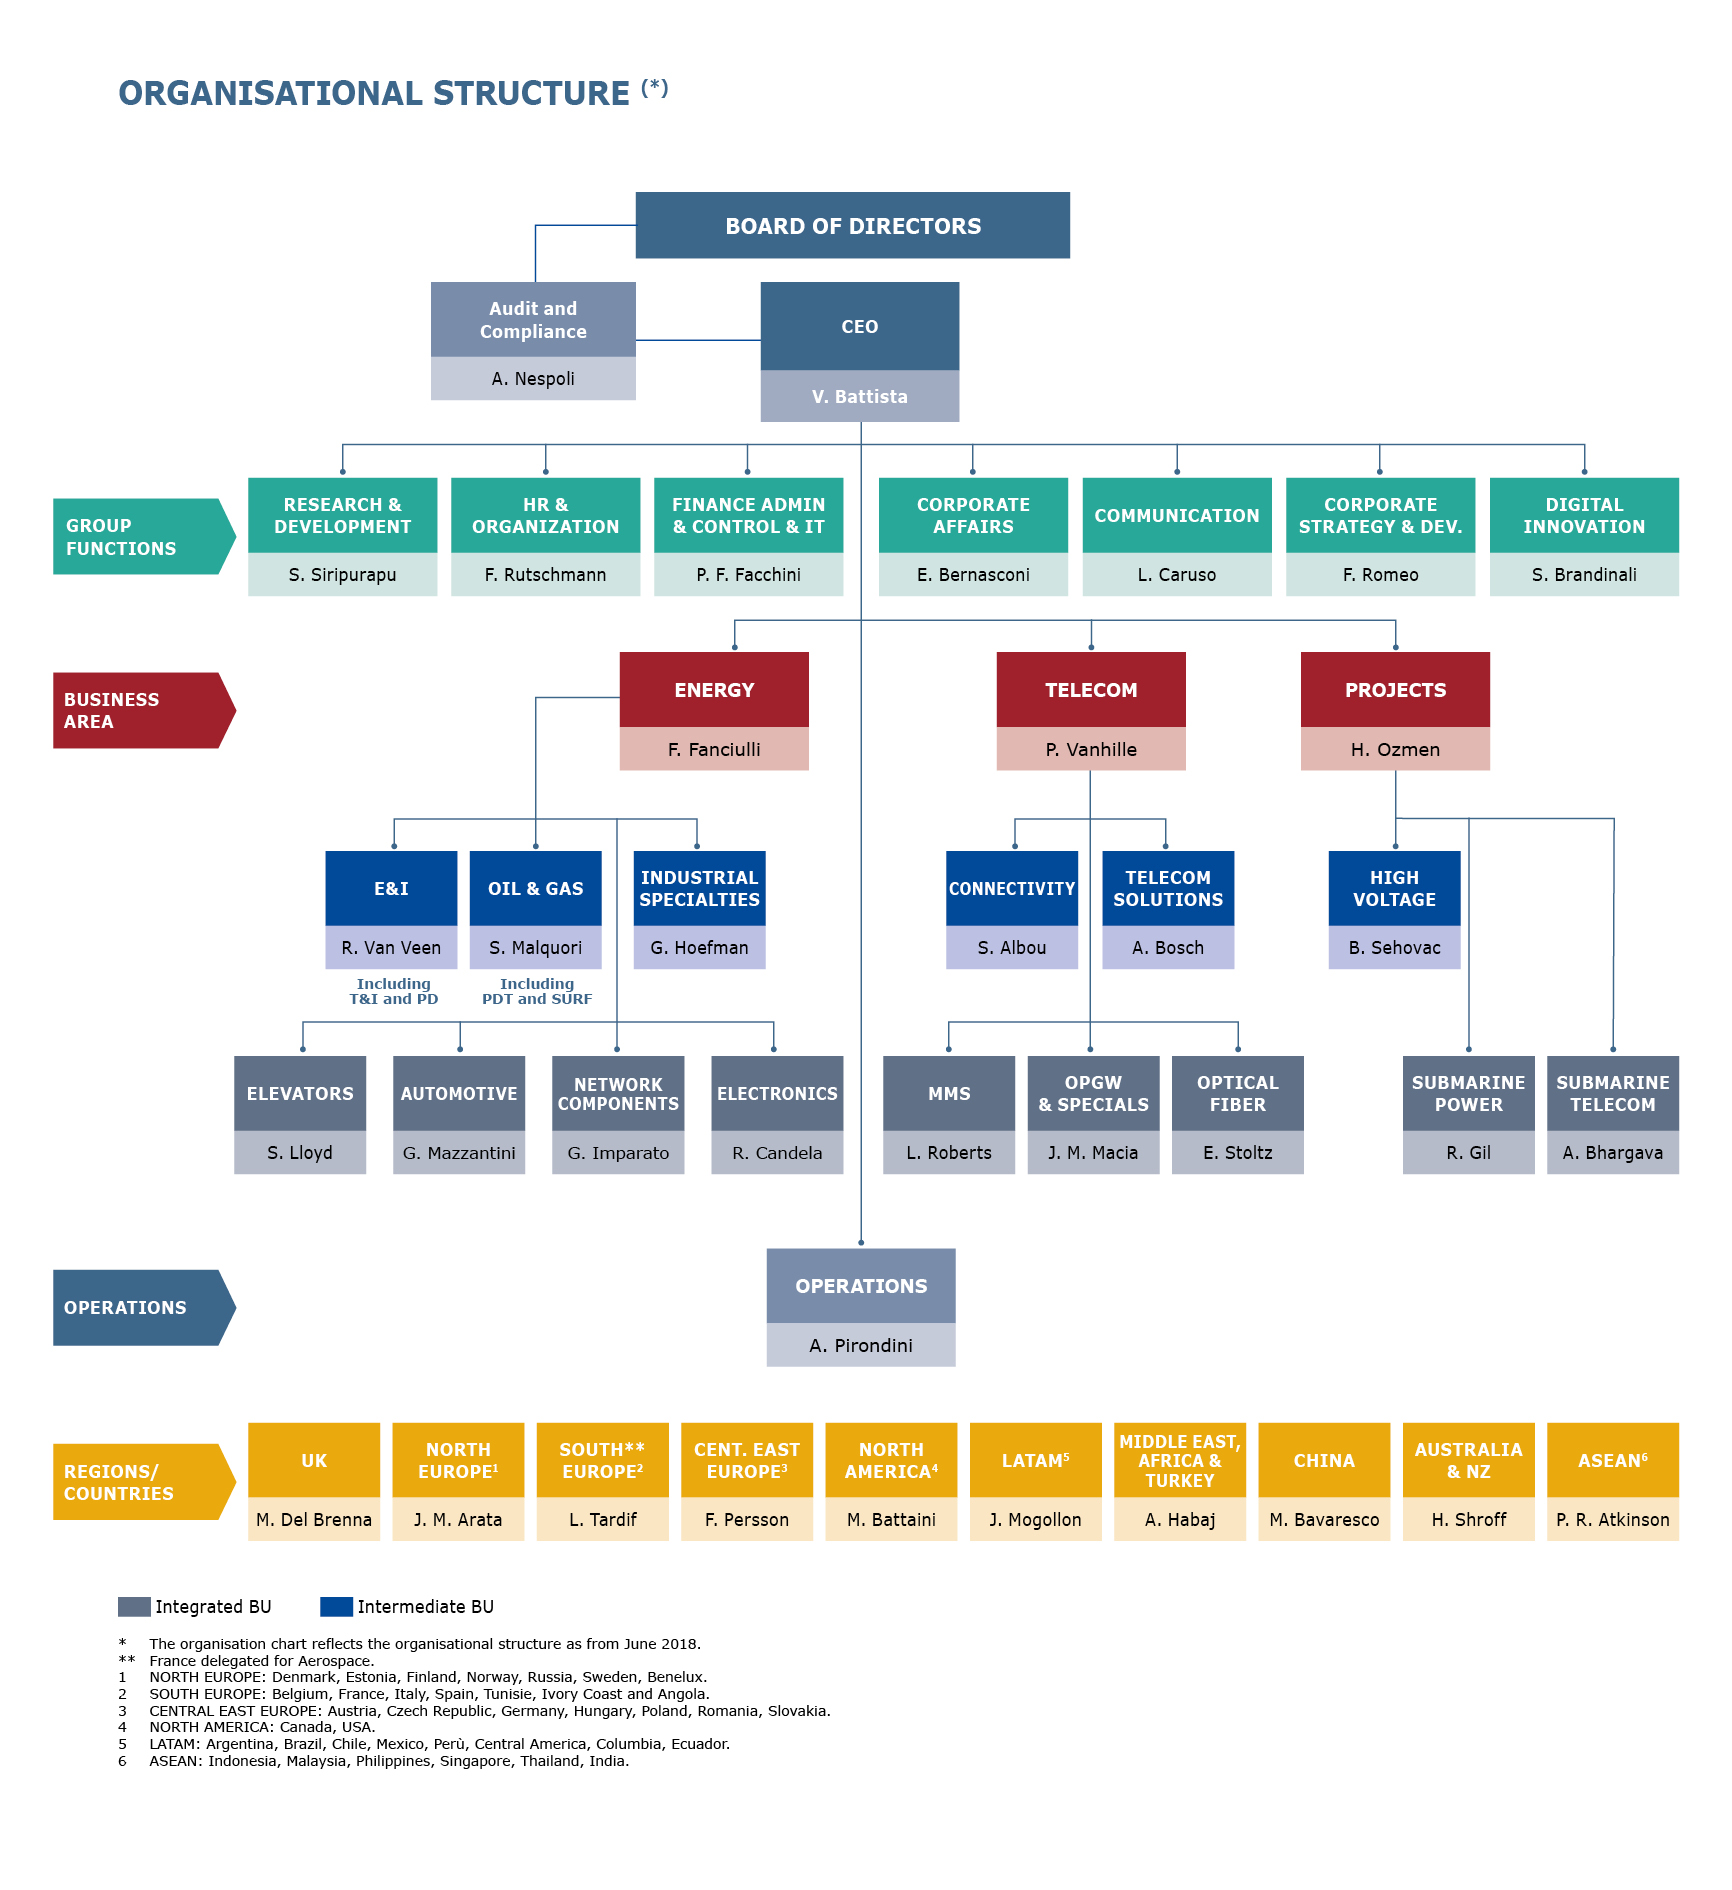 organisational structure prysmian group thermal power plant diagram